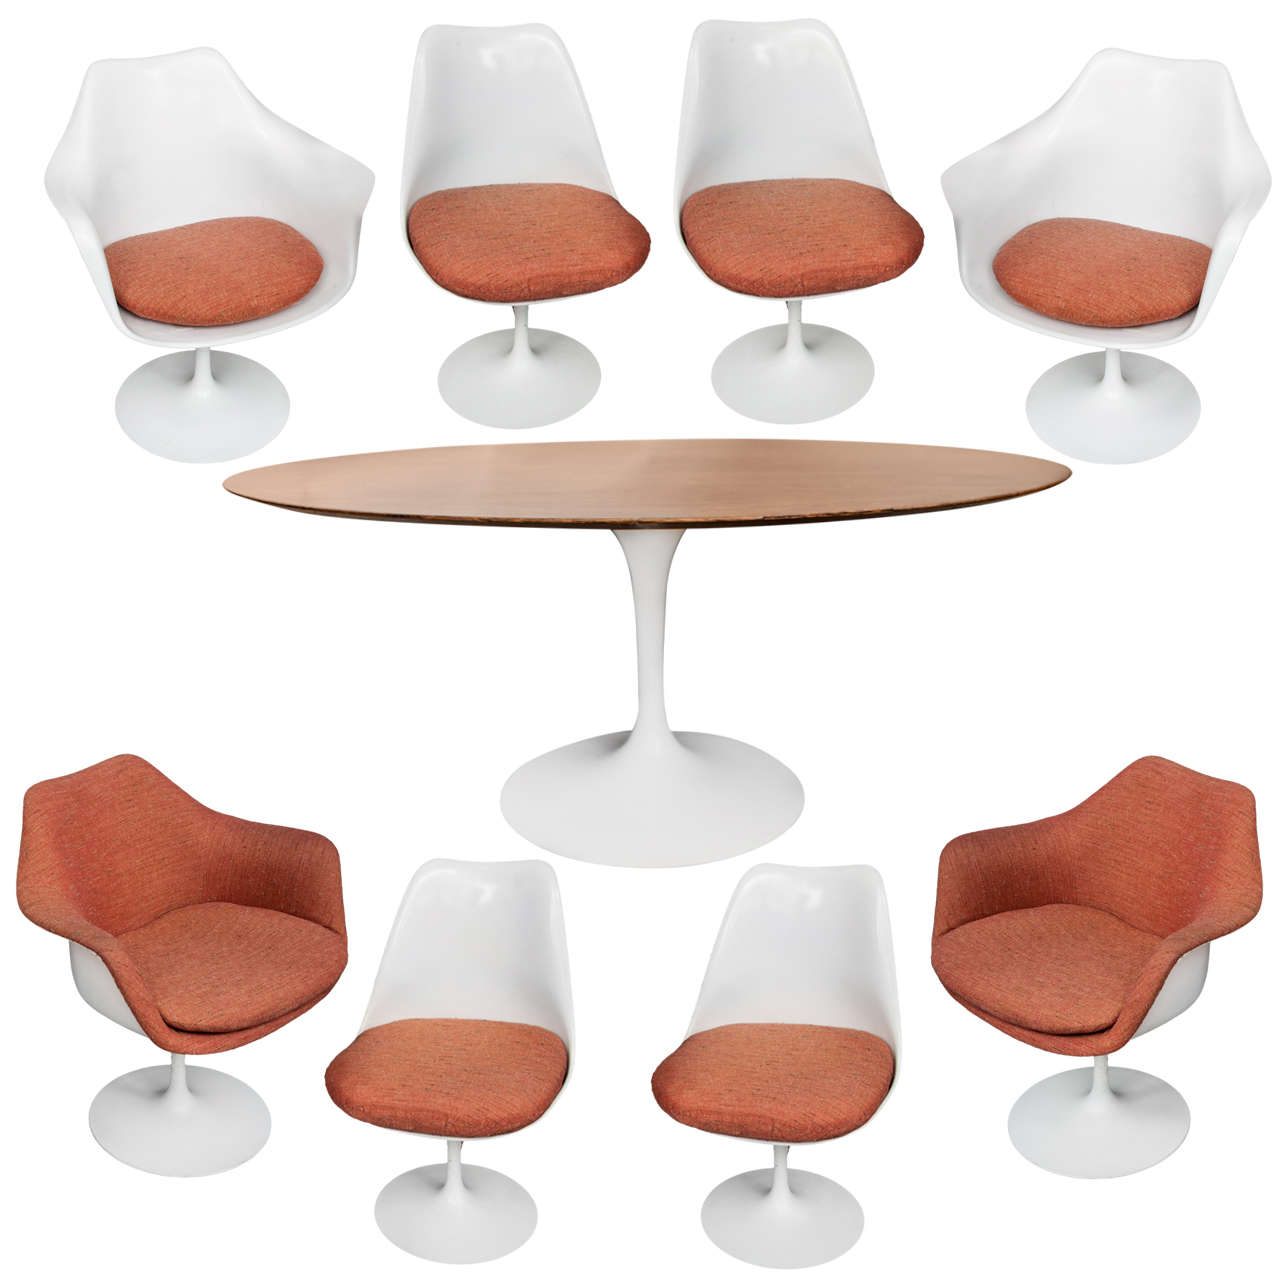 A Tulip Dining Table With Eight Chairsdesigned By Eero Saarinen For - Tulip chair and table set